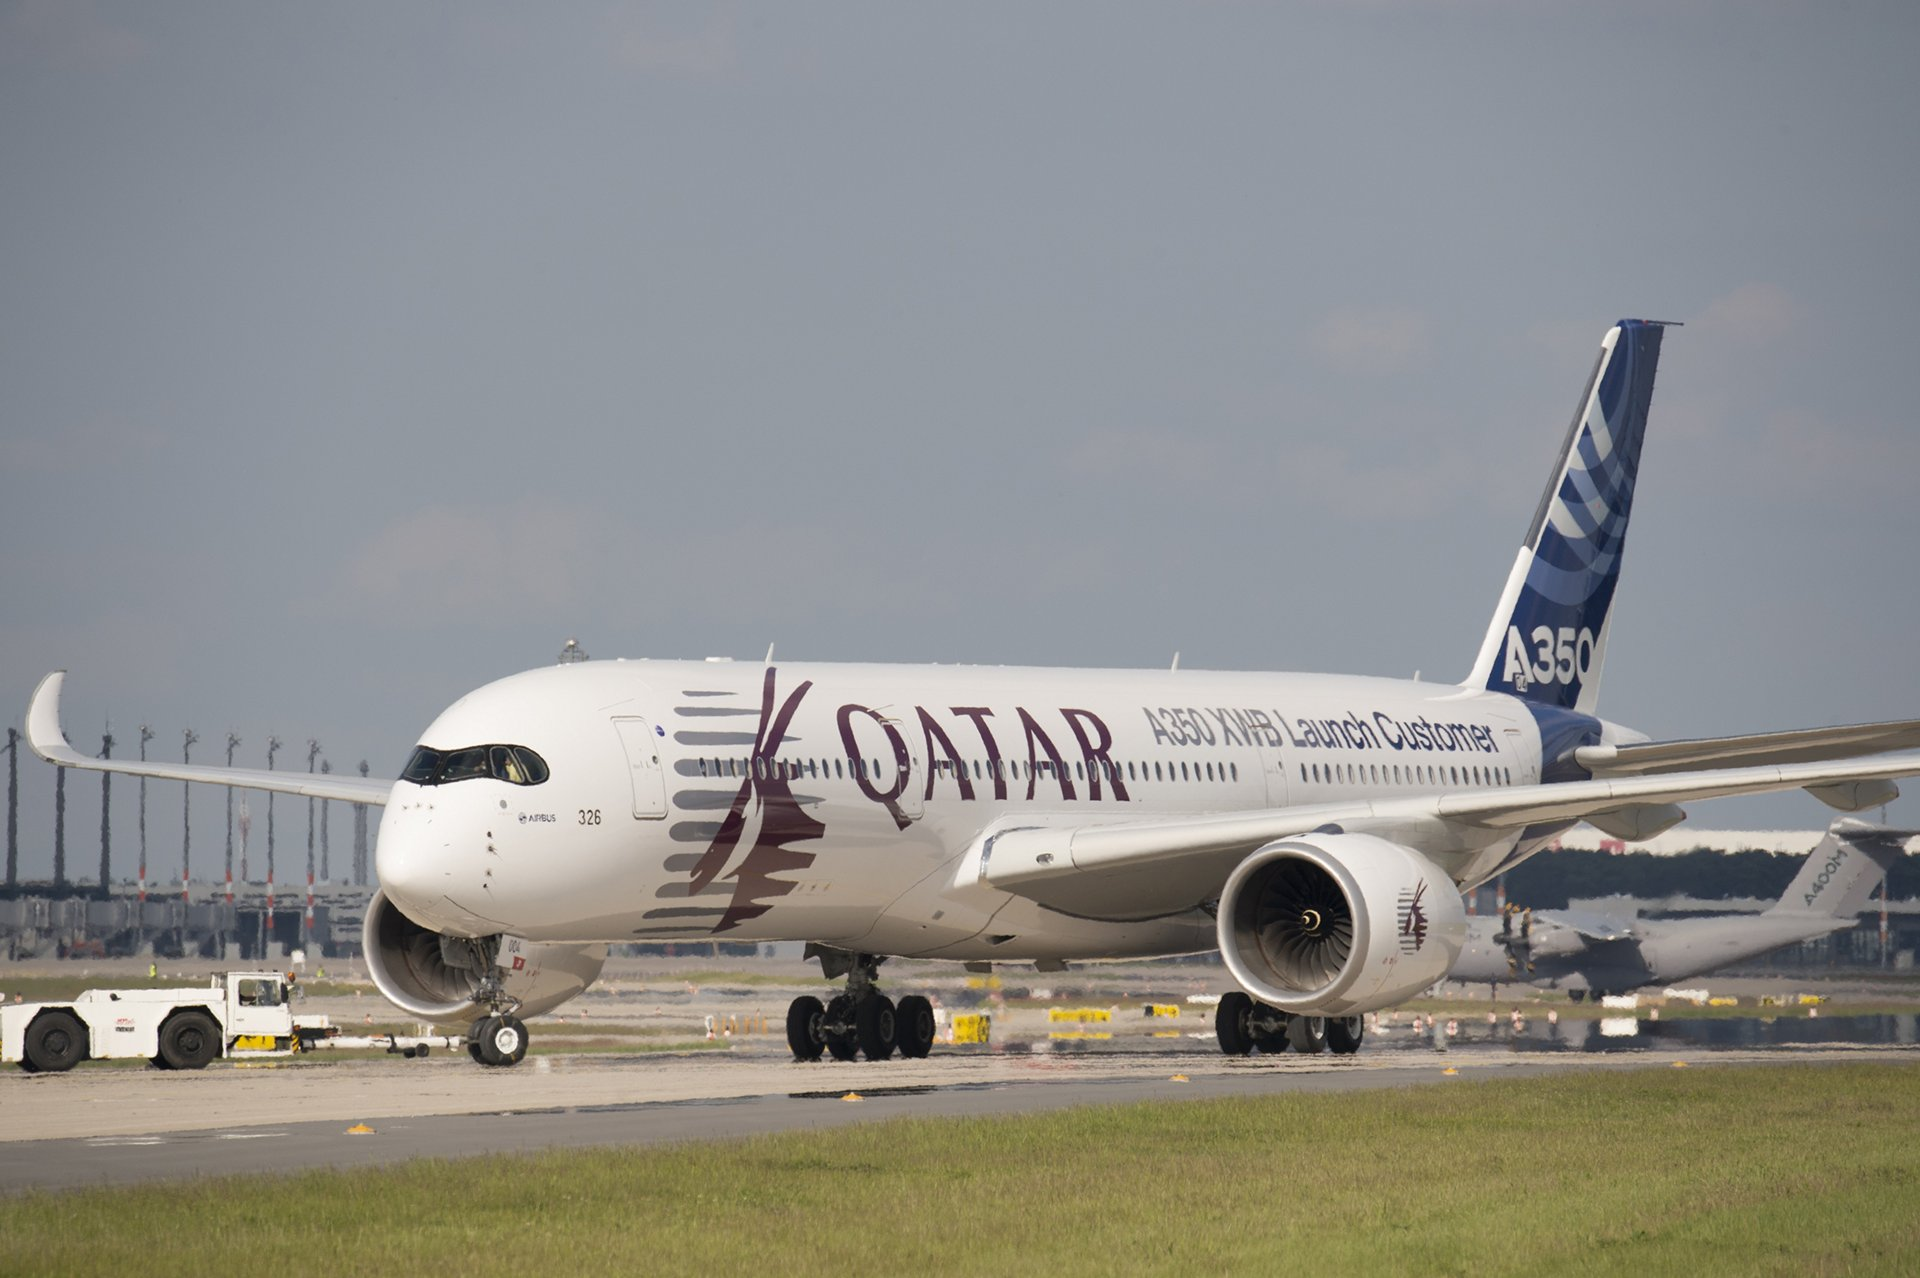 The Qatar A350 arrived at ILA Airshow in the afternoon of May 19.